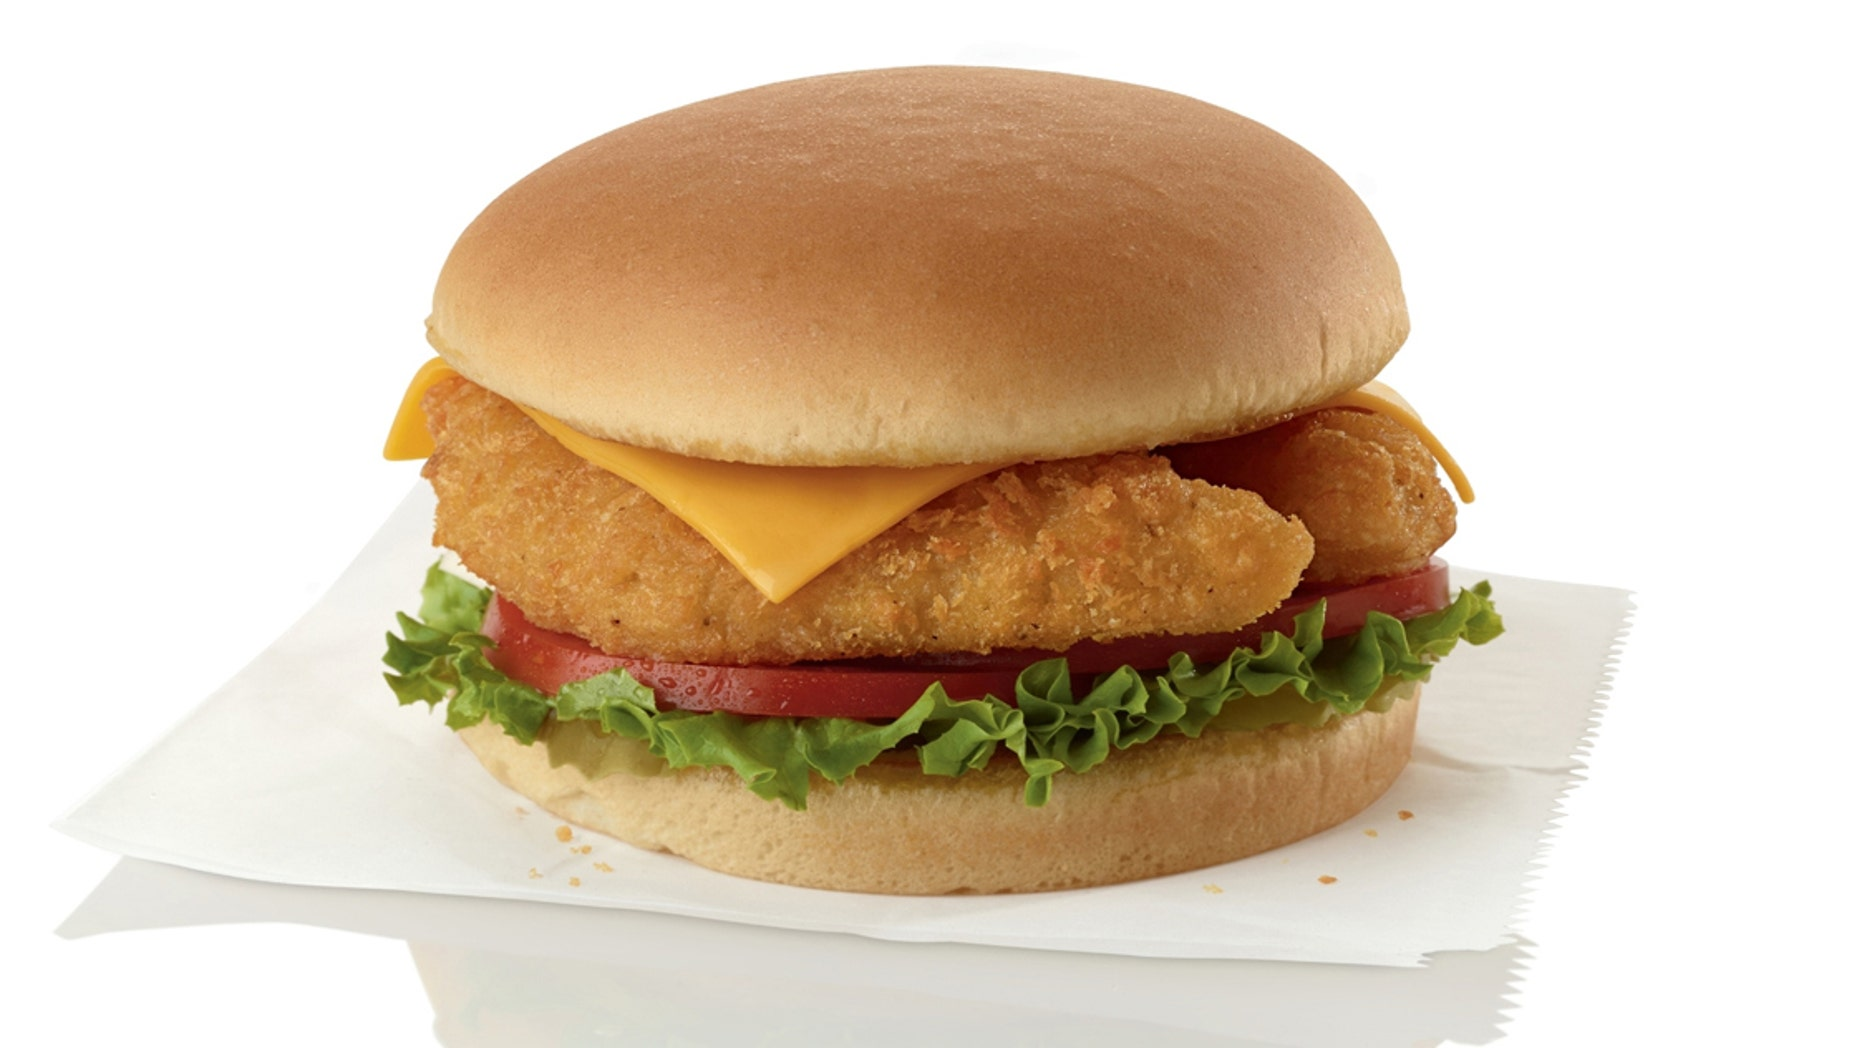 In addition to the sandwich, Chick-fil-A will also bring back its two- and three-count fish strip entrees.